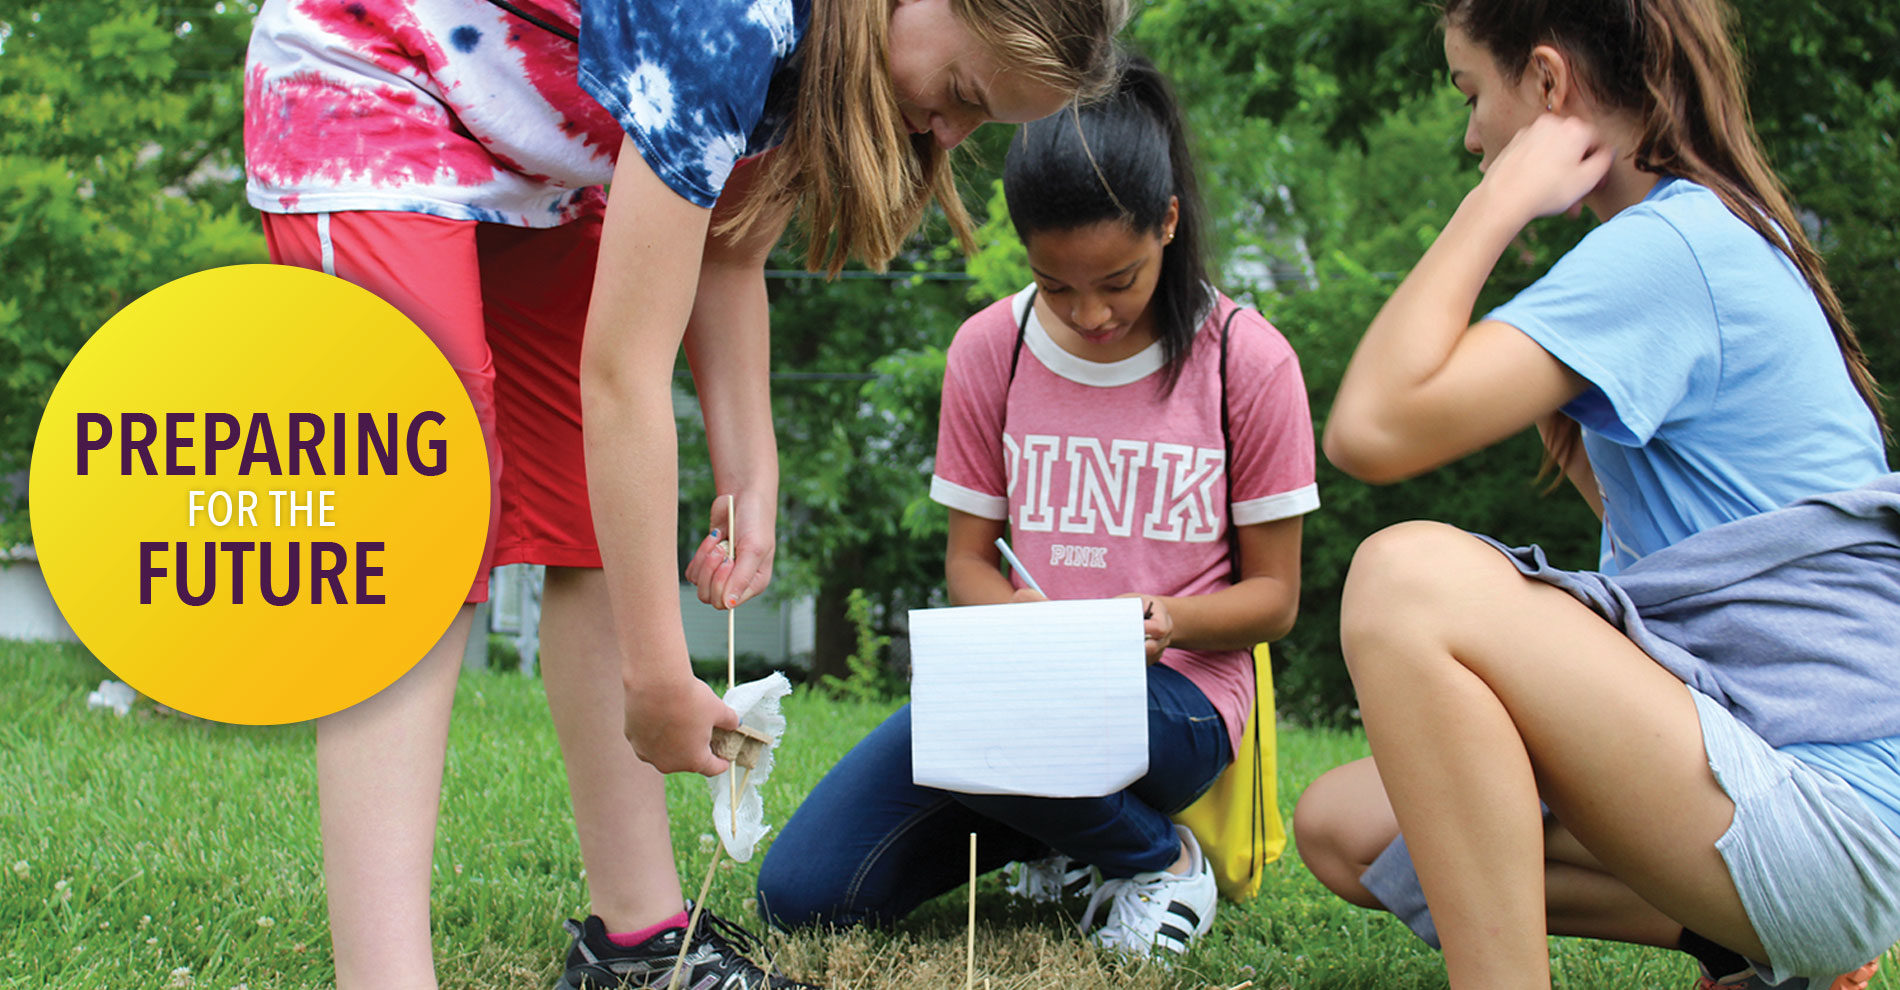 Girls In Science at Fontbonne University